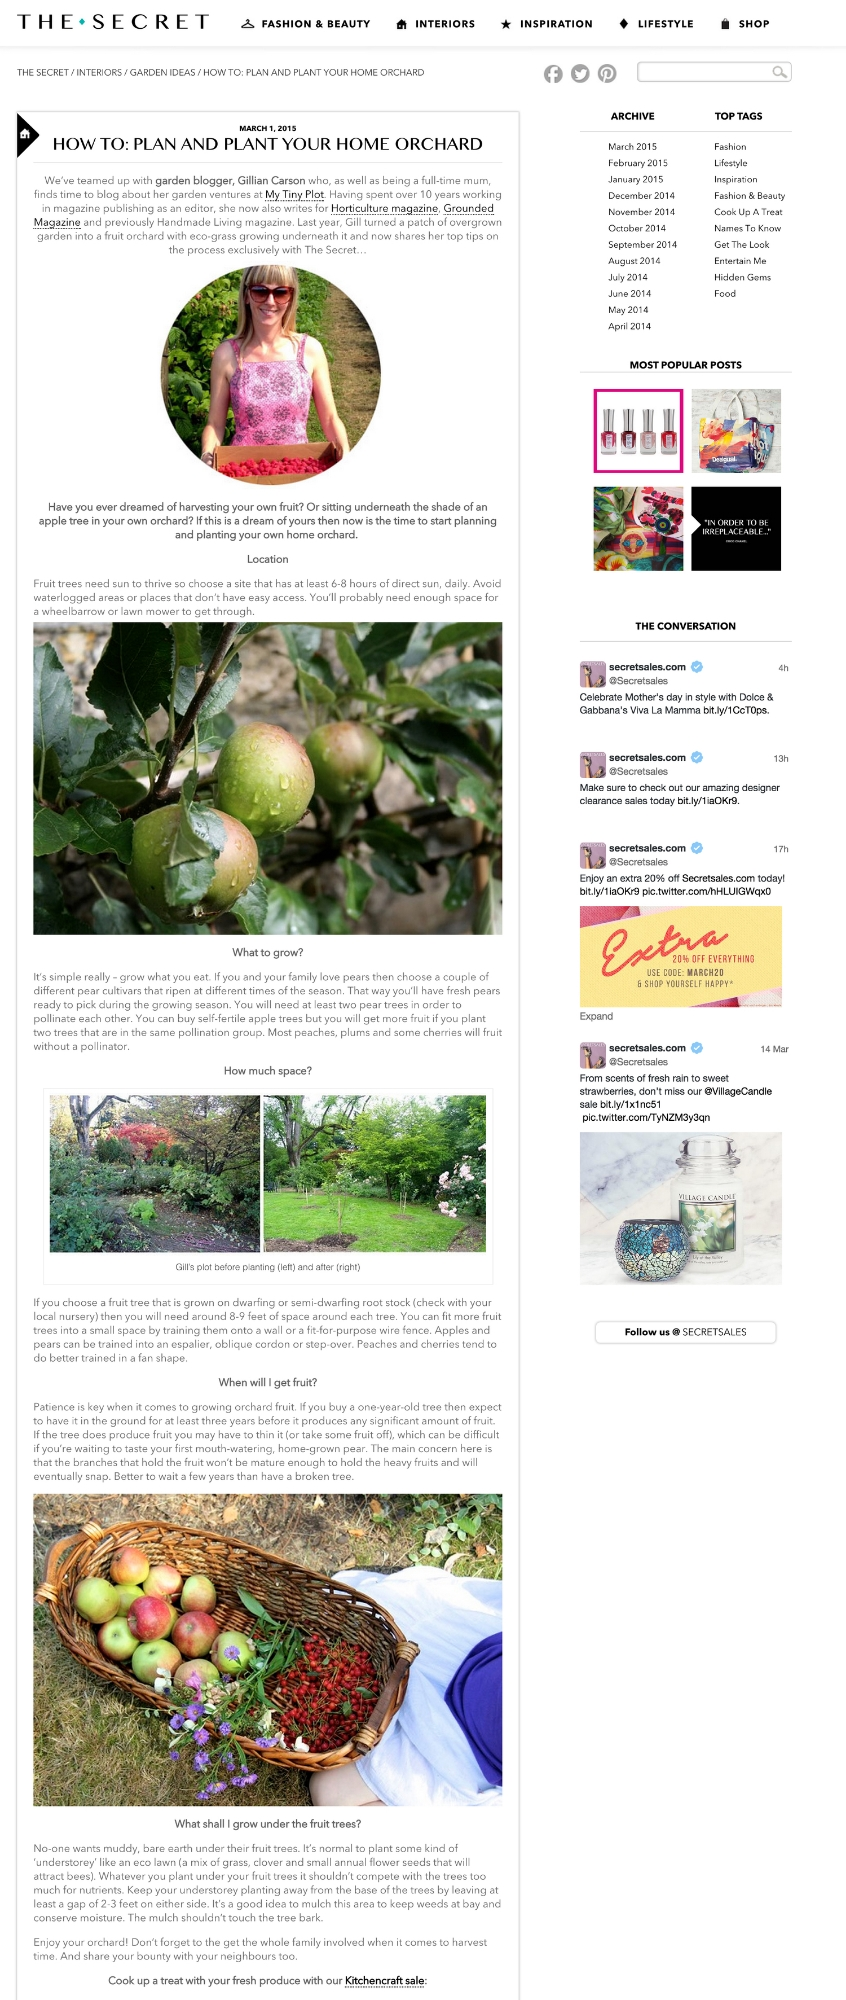 thesecret_plan orchard feature.jpg